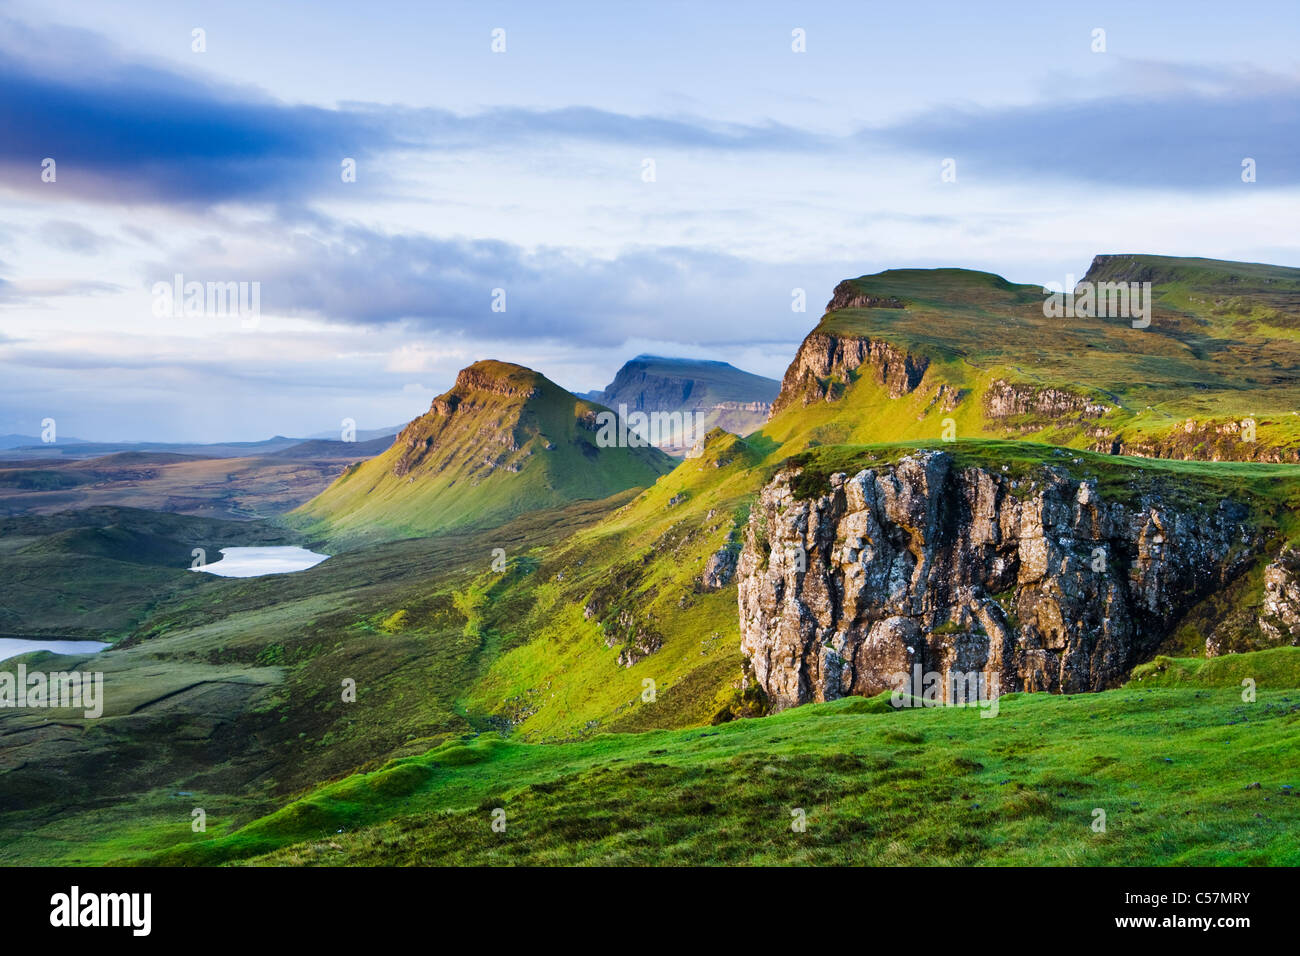 the quiraing isle of skye scotland uk stock photo royalty free image 37664031 alamy. Black Bedroom Furniture Sets. Home Design Ideas